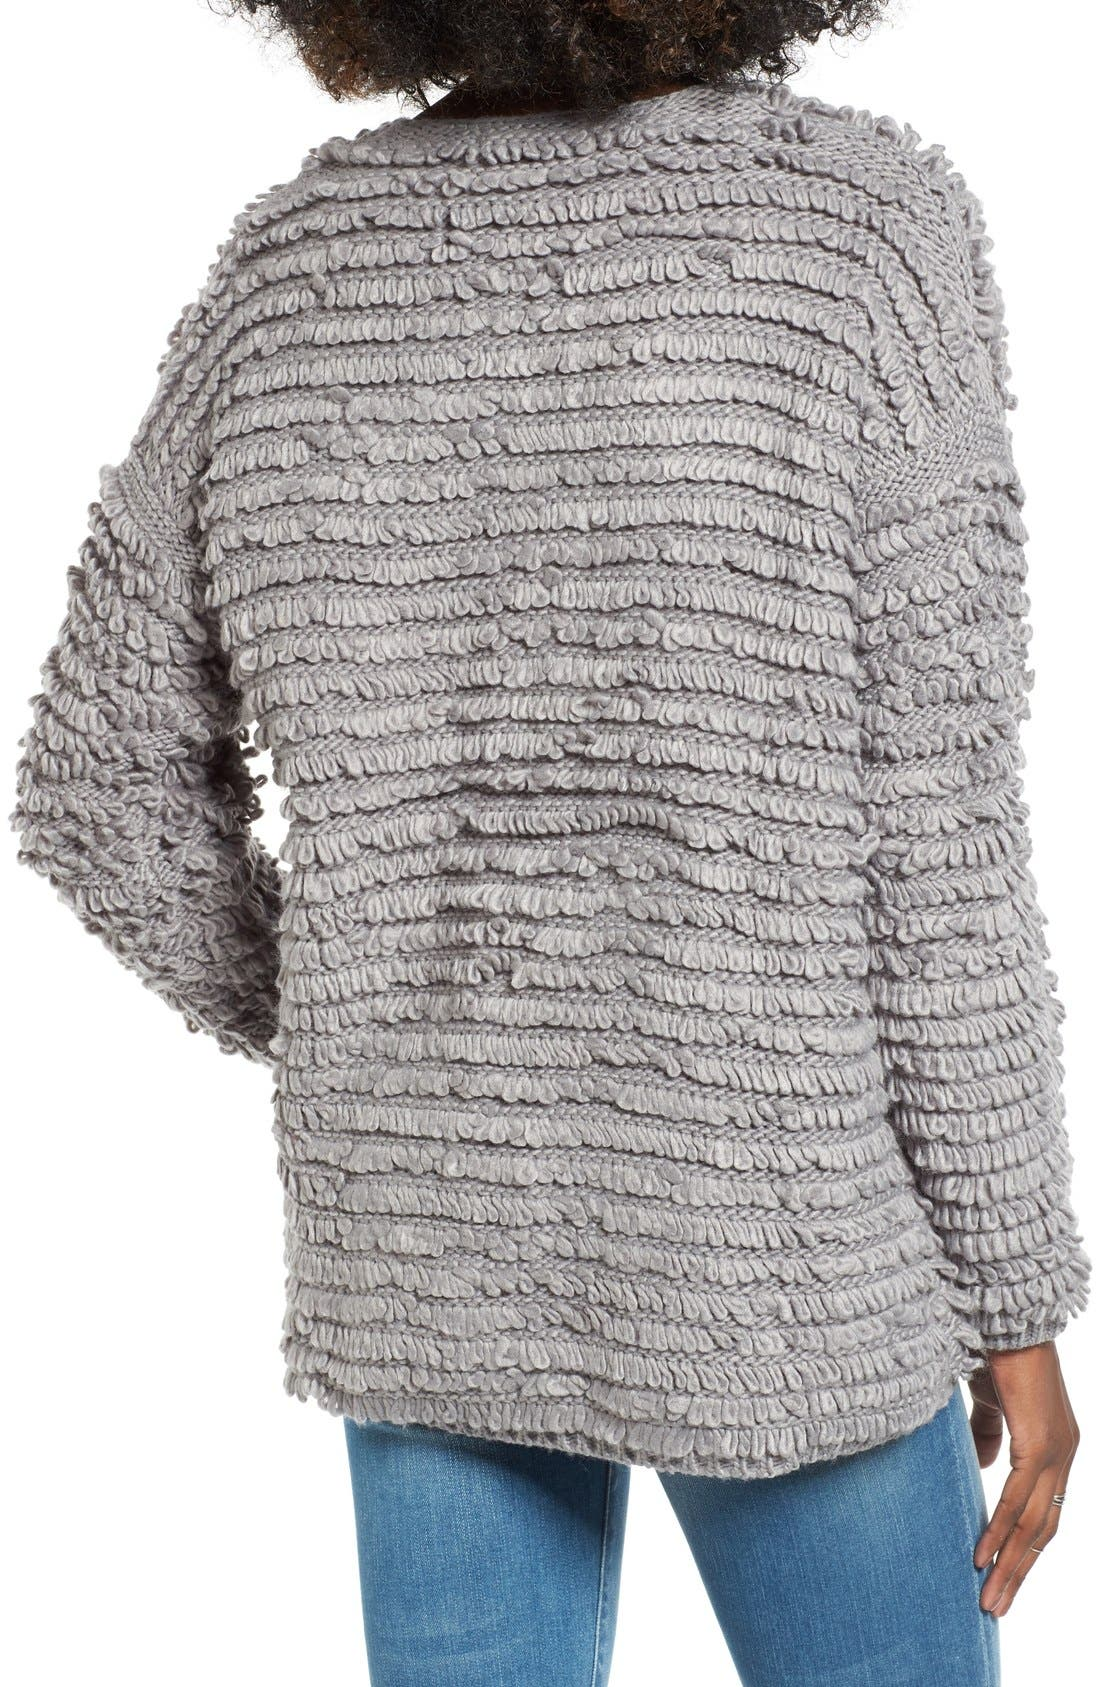 'Townsend' Loop Sweater,                             Alternate thumbnail 3, color,                             020